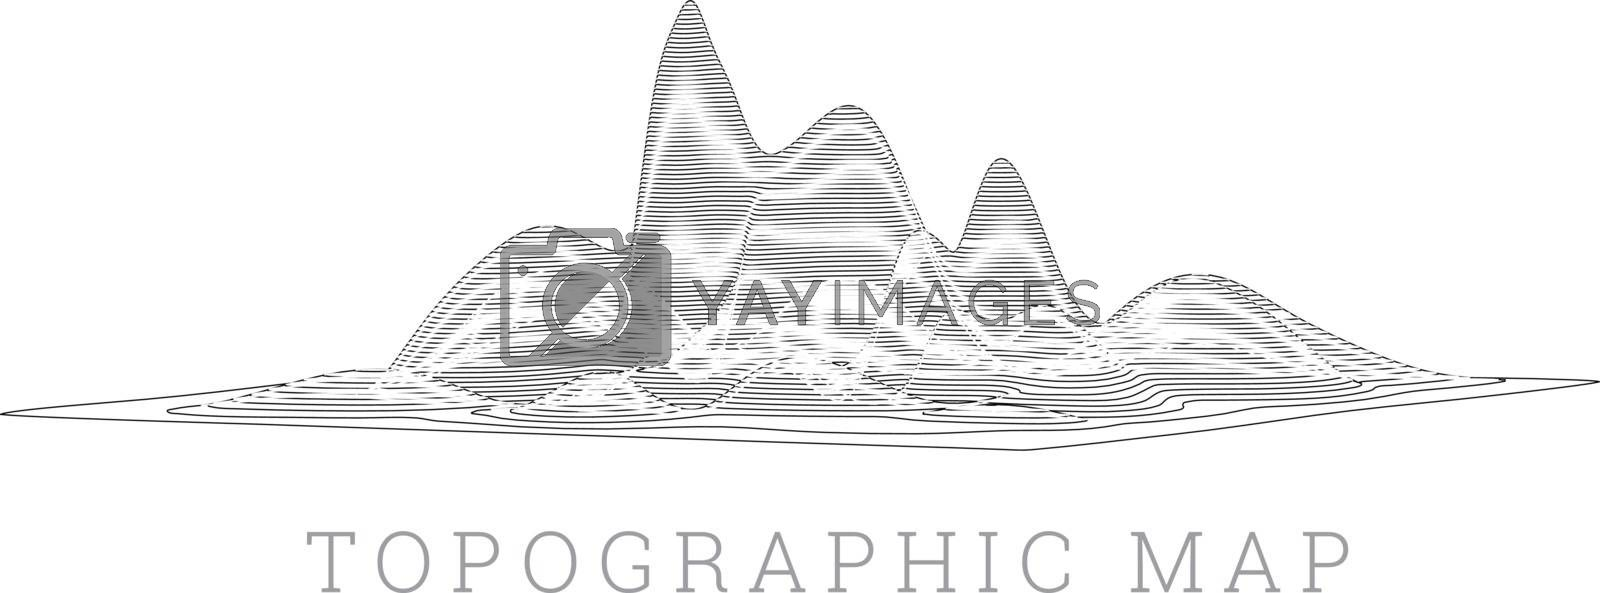 Royalty free image of Topographical map of the locality, vector illustration by sermax55